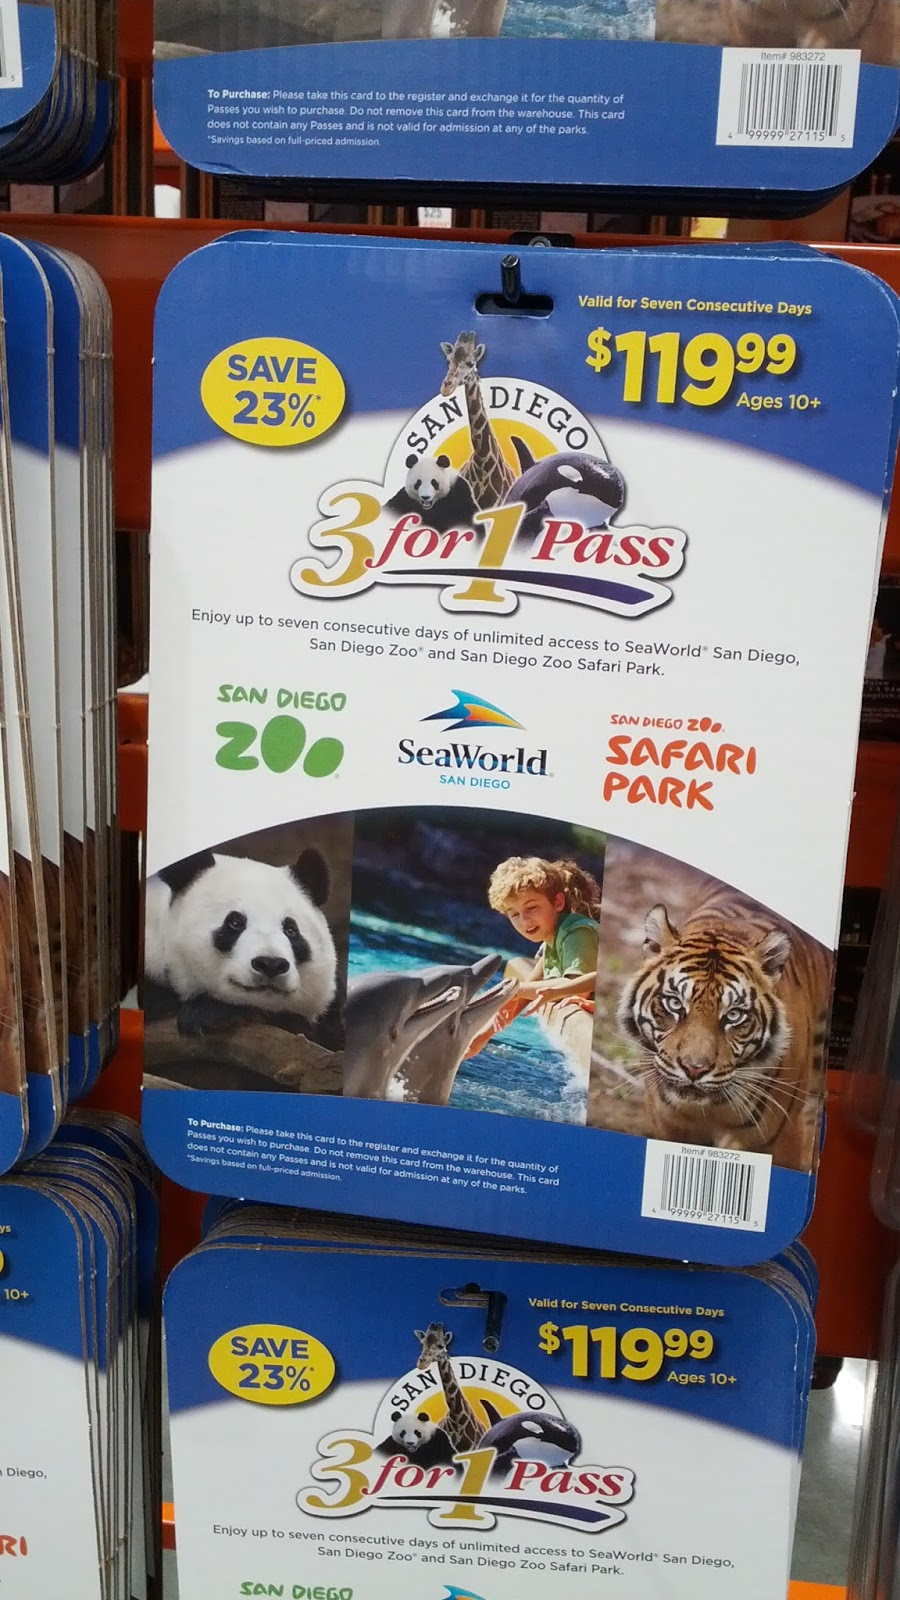 The 3-for-1 pass includes unlimited and flexible admission to SeaWorld, San Diego Zoo, and the San Diego Zoo Safari Park for 7 days. The price does not include parking, additional attractions, special events, or other extraneous purchases within each attraction.